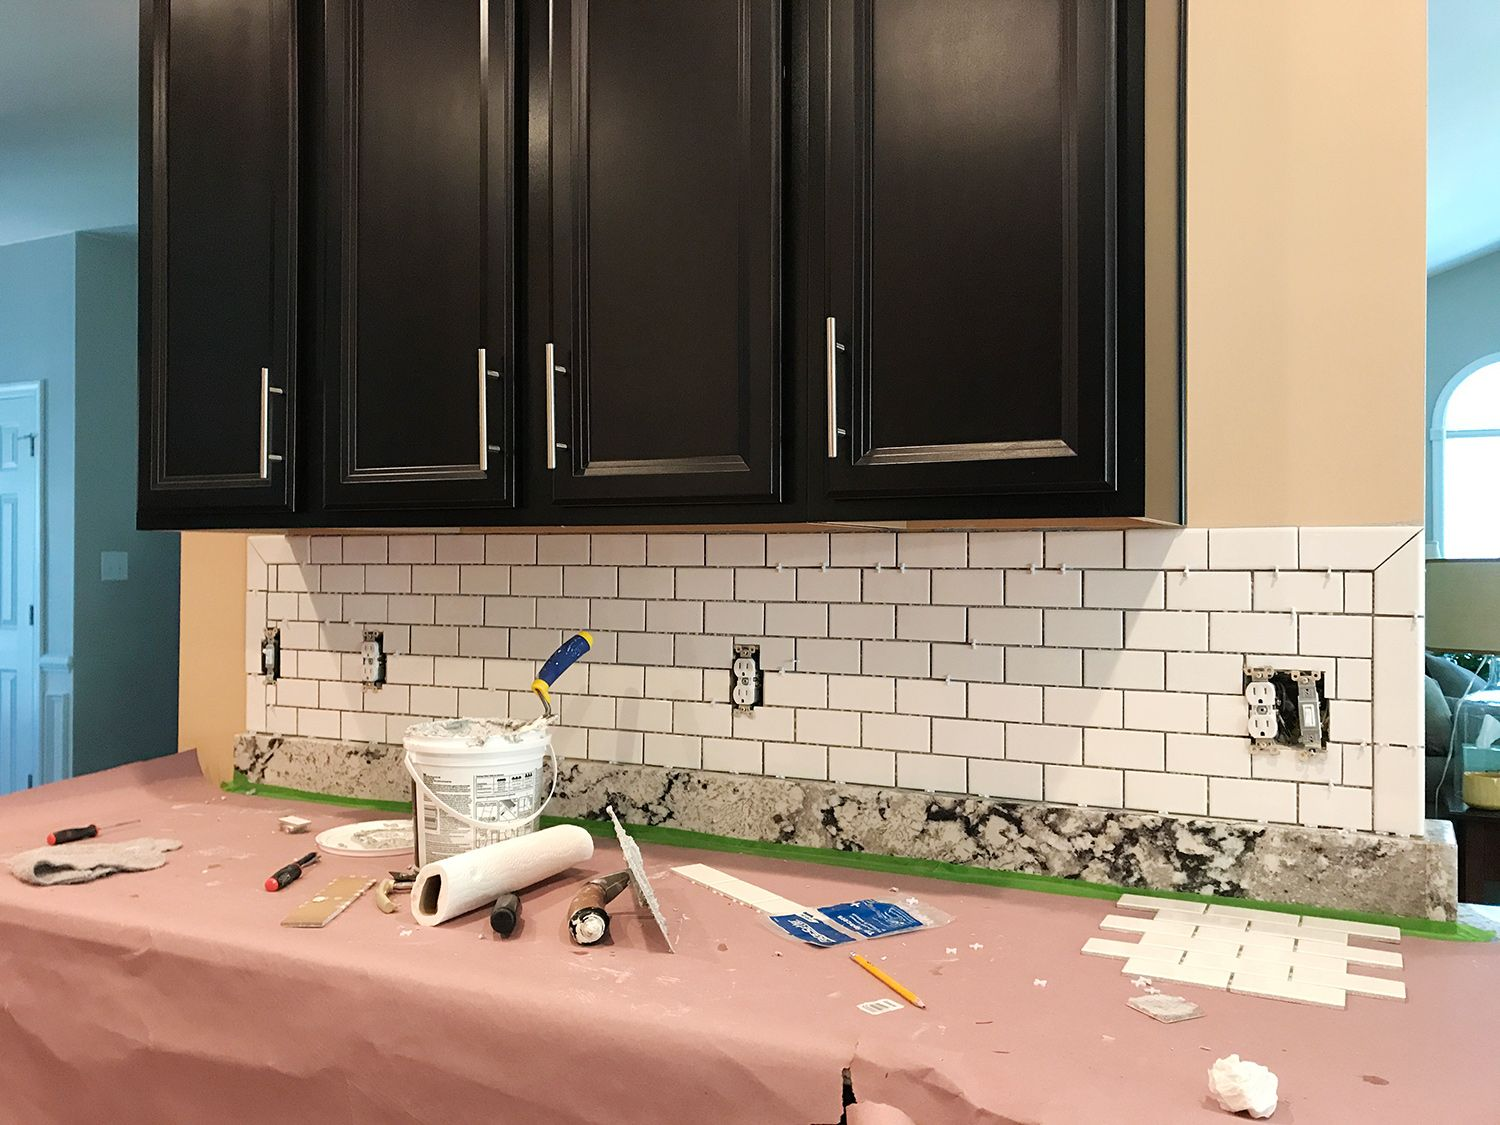 How To Install A Subway Tile Kitchen Backsplash Young House Love Kitchen Tiles Backsplash Subway Tile Backsplash Kitchen Subway Tile Kitchen